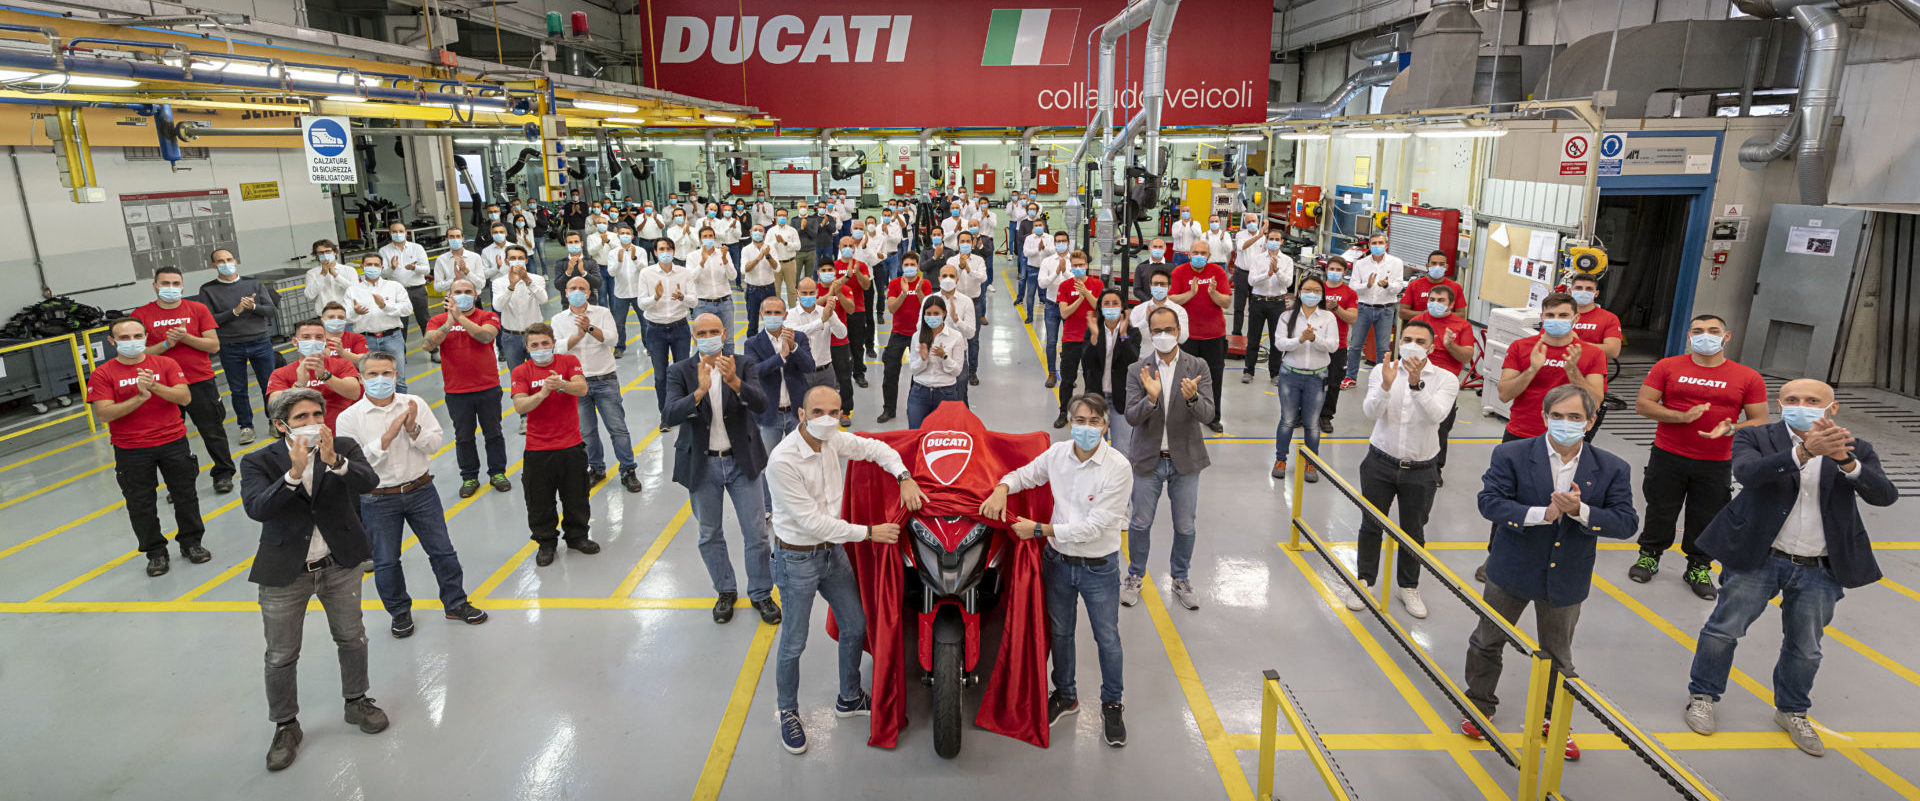 Ahead of its official unveiling, Ducati is announcing its new Multistrada V4 will feature front and rear radar systems to enhance rider safety. Photo courtesy Ducati.